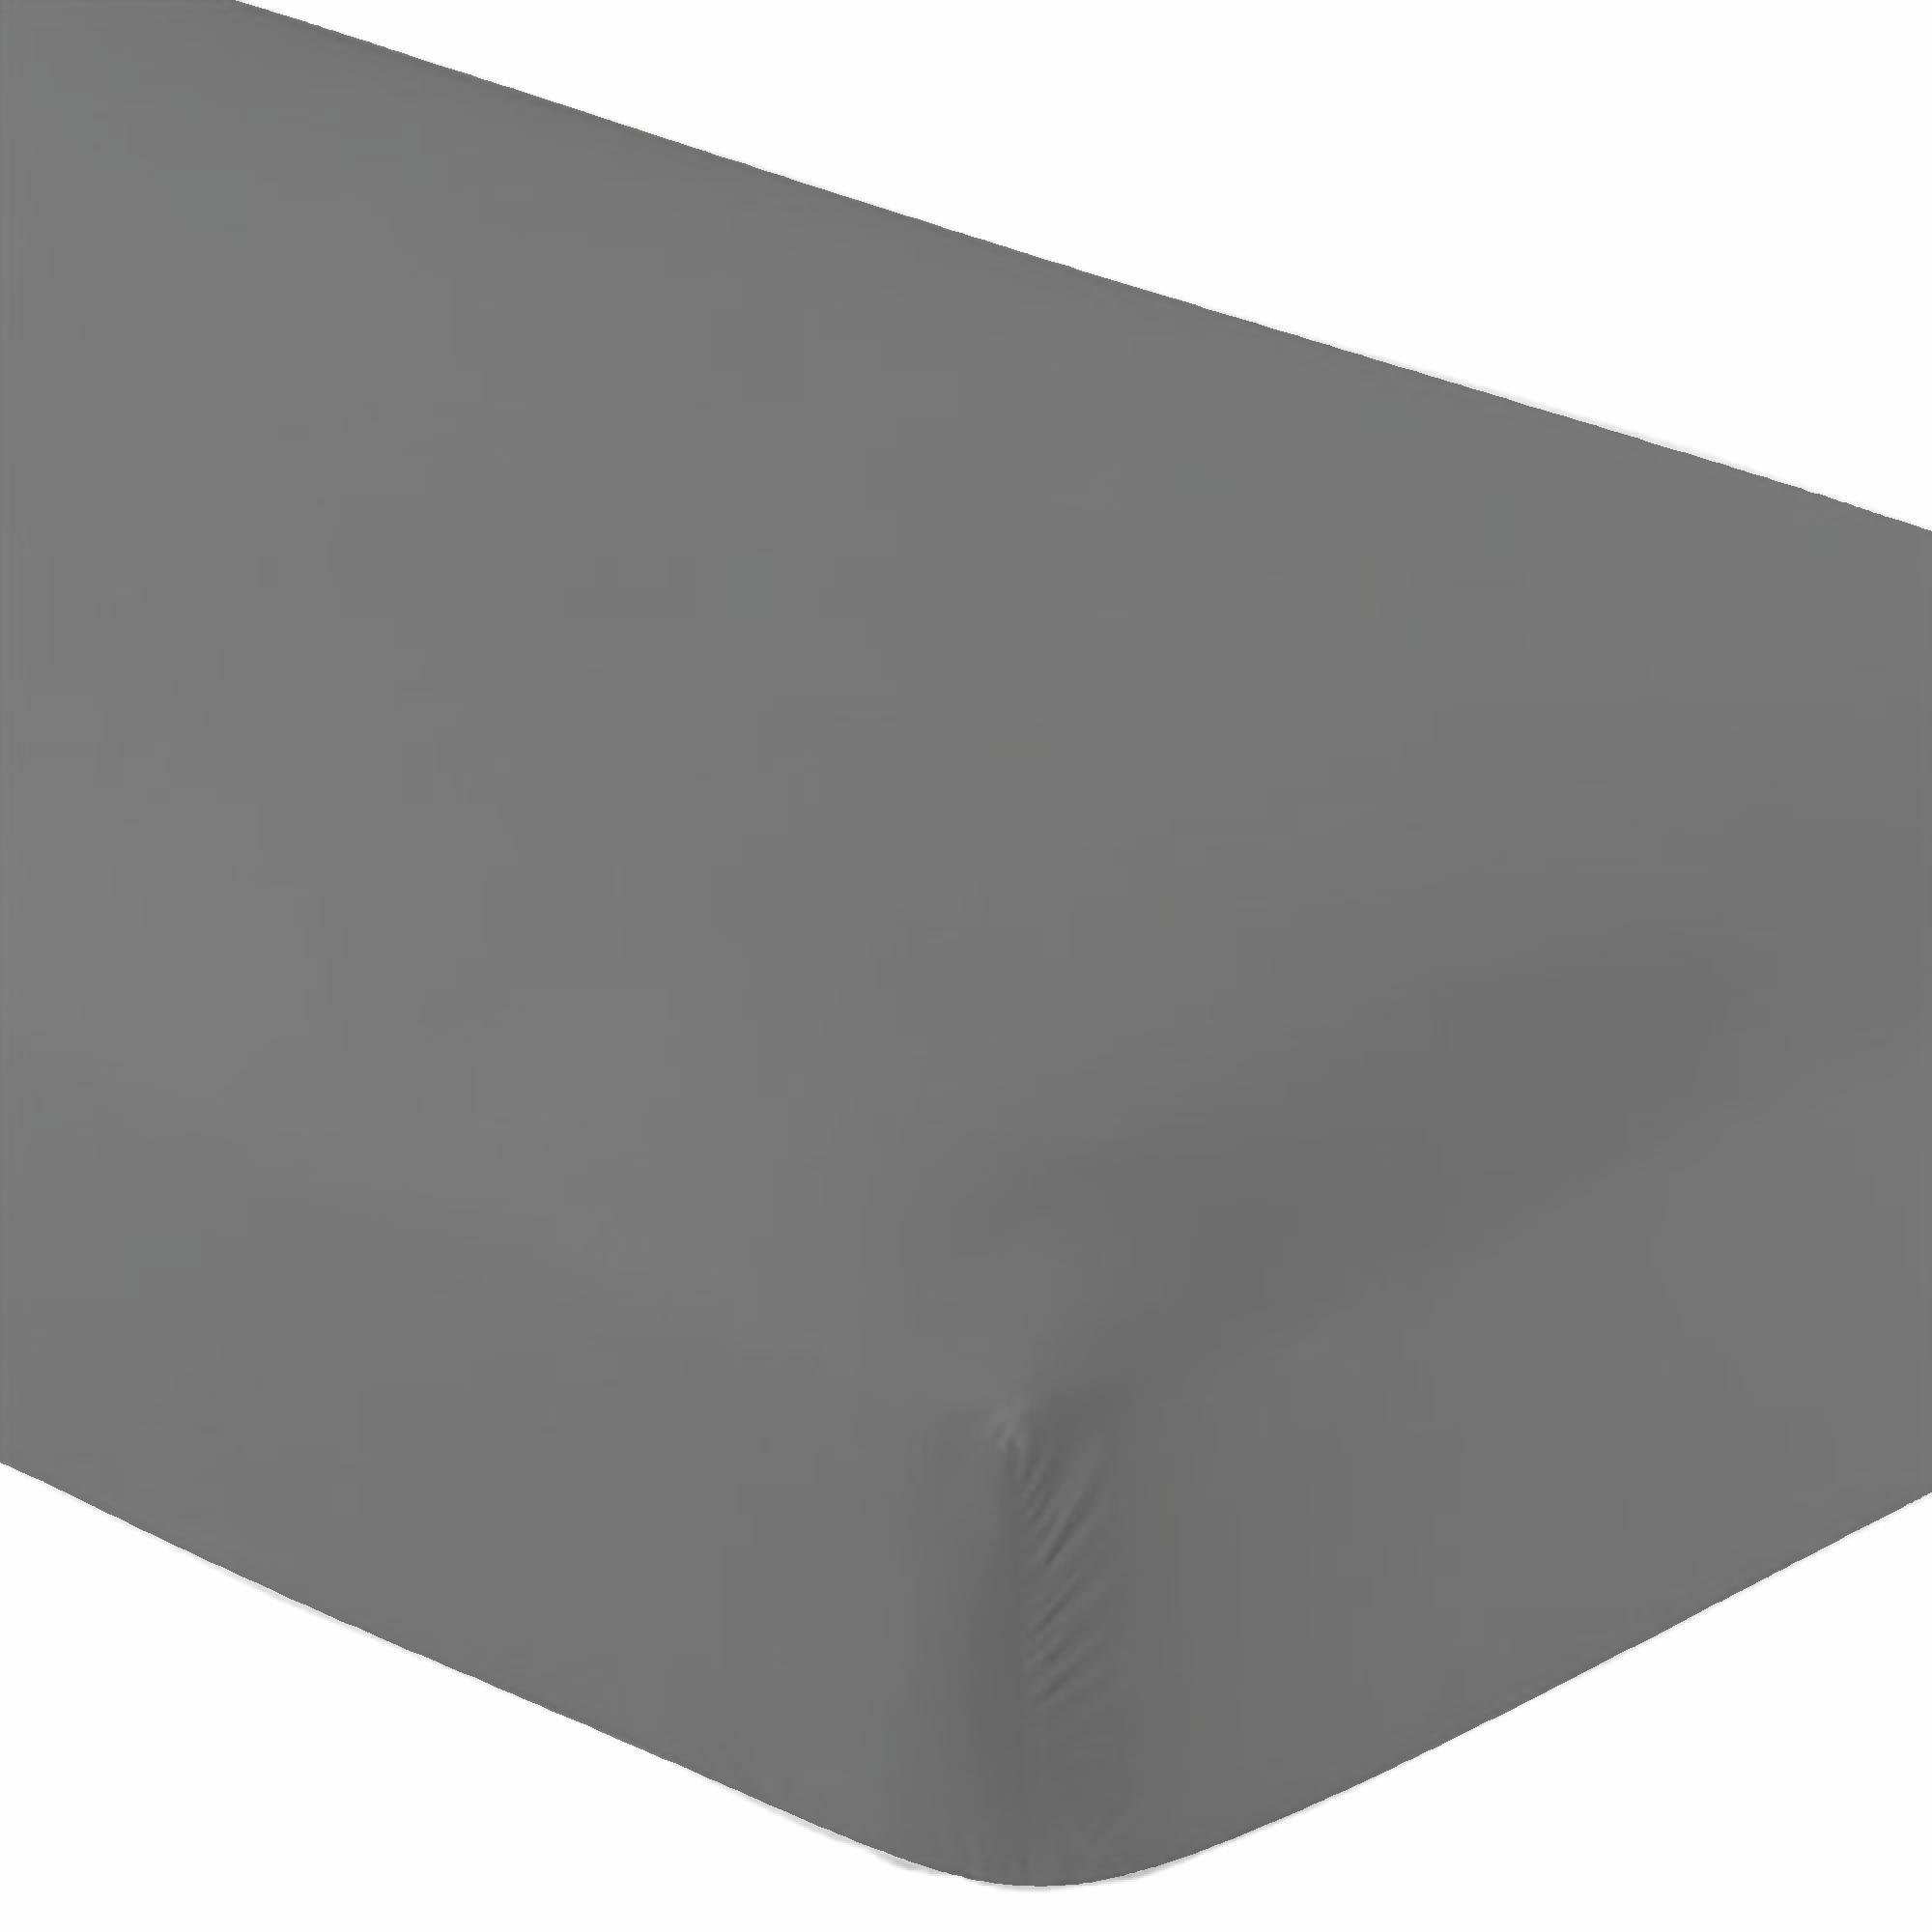 Hunter Green Twin Fitted Sheet Only - Premium Quality Combed Cotton Soft & Comfy - Deep Pocket, Hotel Quality By Crescent Bedding (Twin, Army Green) - 100% Satisfaction Guarantee